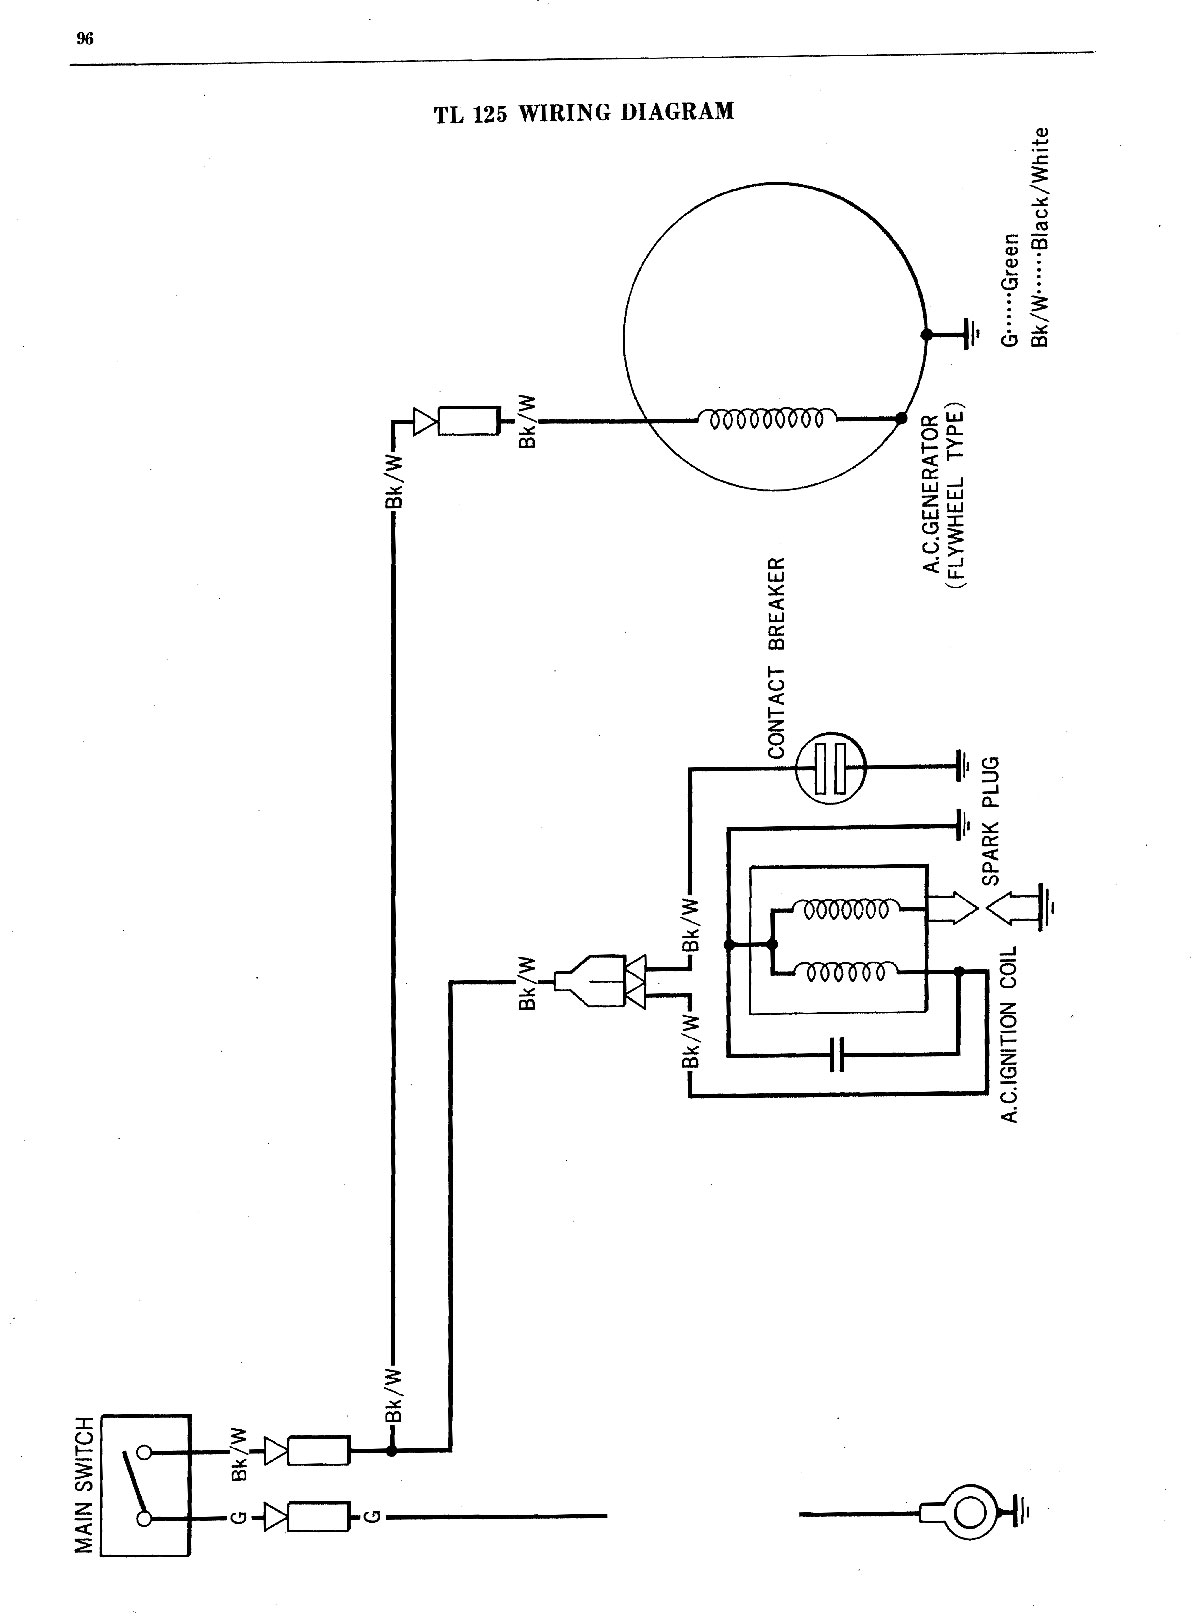 Honda TL125 Wiring Diagram pe 400 wiring diagram suzuki wiring diagrams instruction Basic Electrical Wiring Diagrams at soozxer.org